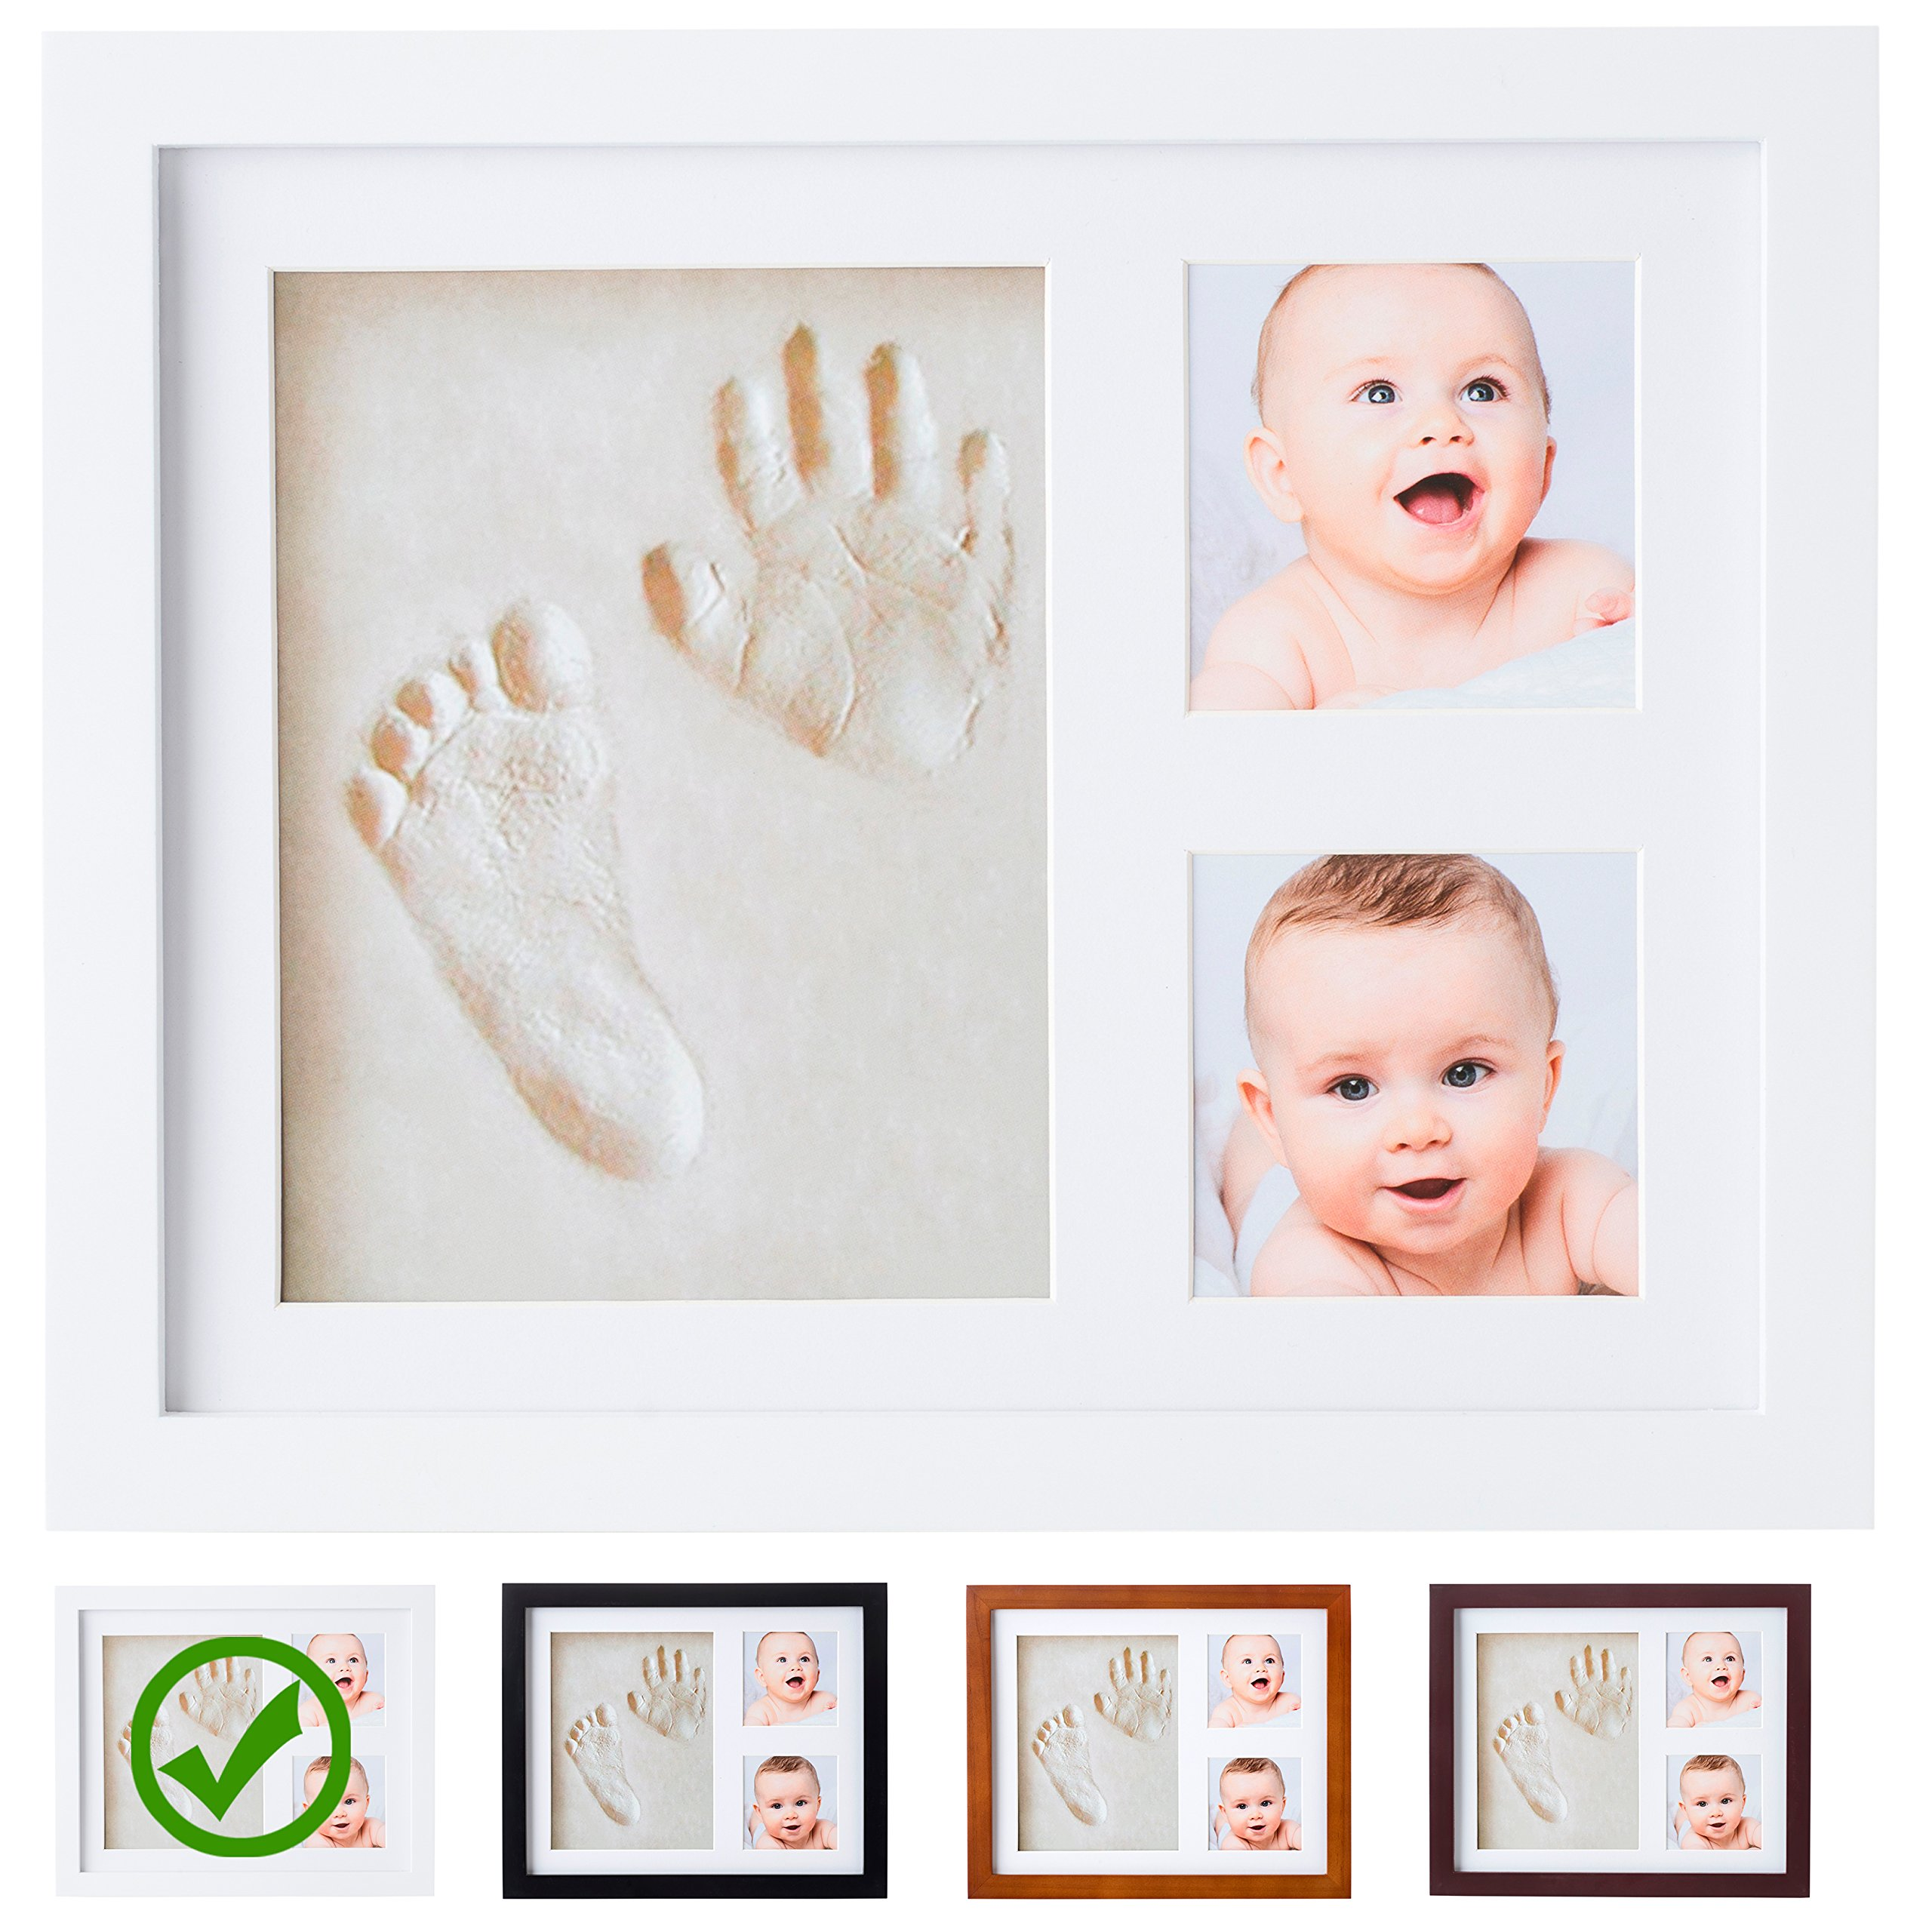 Baby Handprint Kit by Little Hippo |VIDEO INSIDE| Clay Baby Picture Frame (WHITE) Newborn Baby Footprint kit, best baby shower gifts! New Baby boy, girl hand print kit, infant impression keepsake